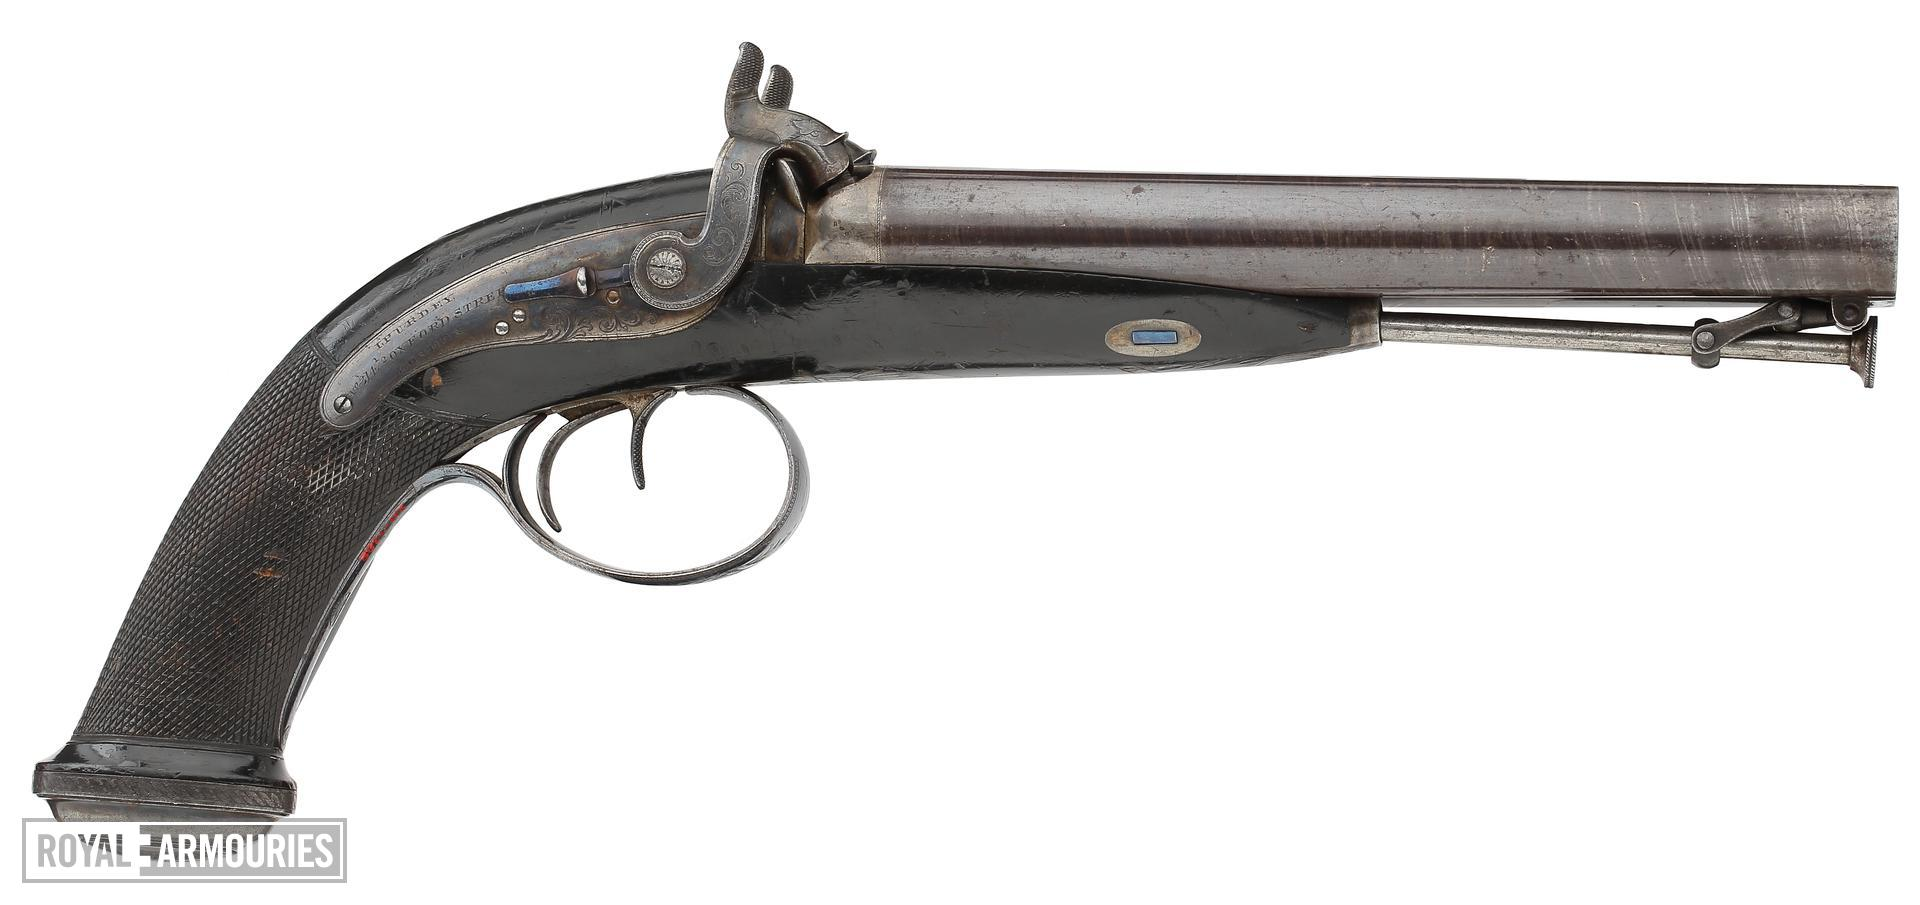 Percussion double-barrelled pistol - Howdah or holster pistol by J. Purdey One of a pair; see XII.1387.